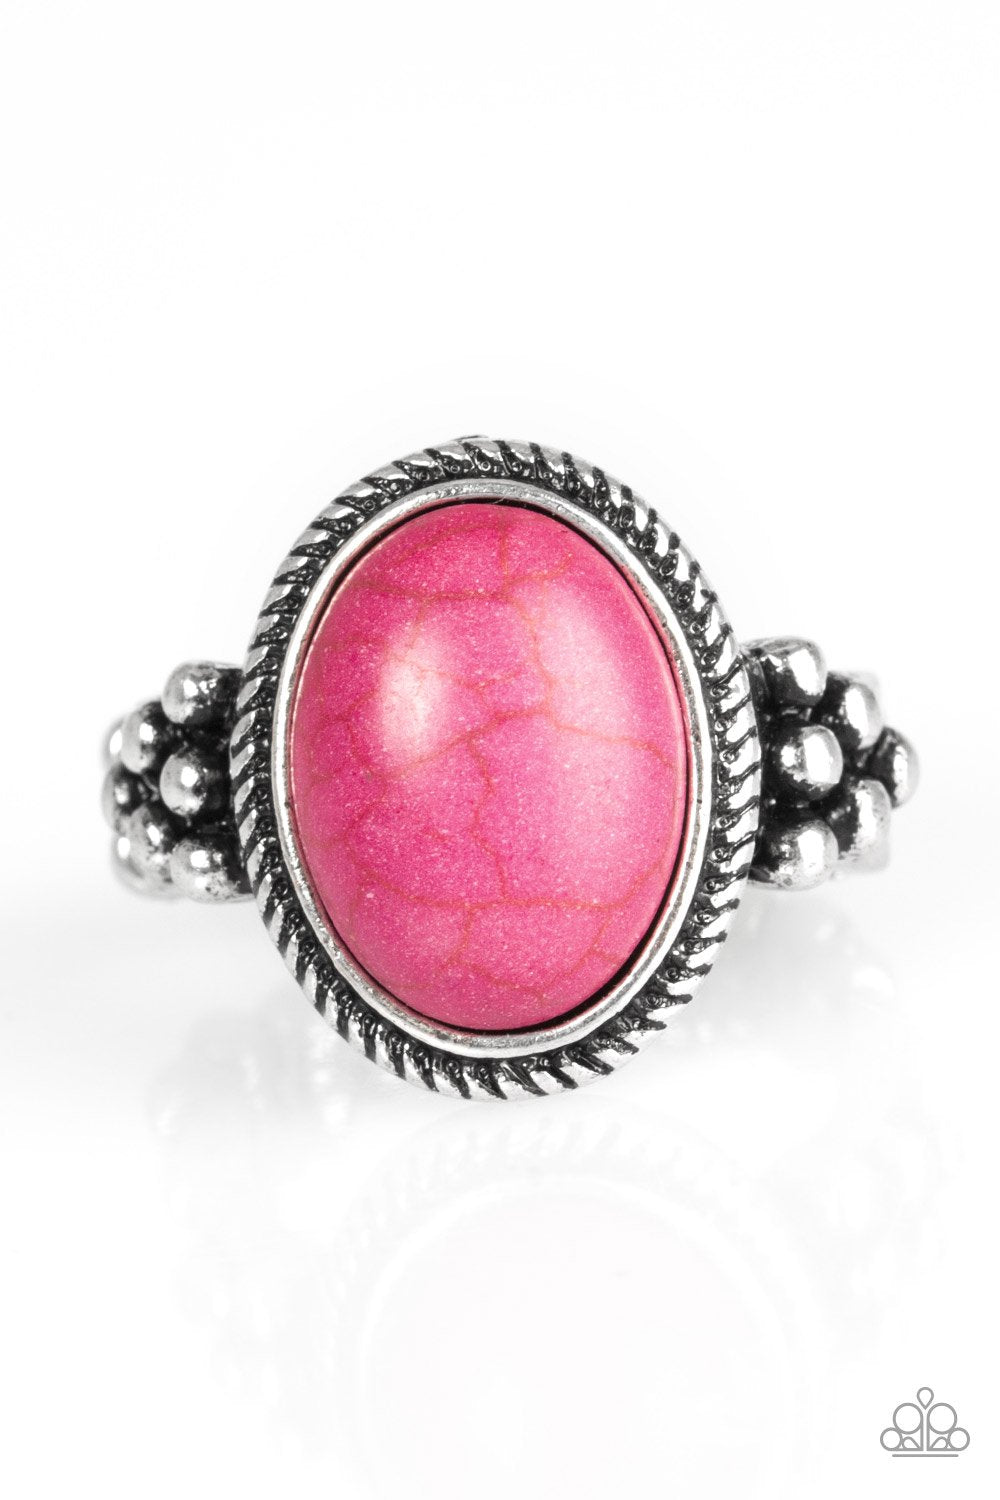 Paparazzi Accessories ~ Stone Age Sophistication - Pink